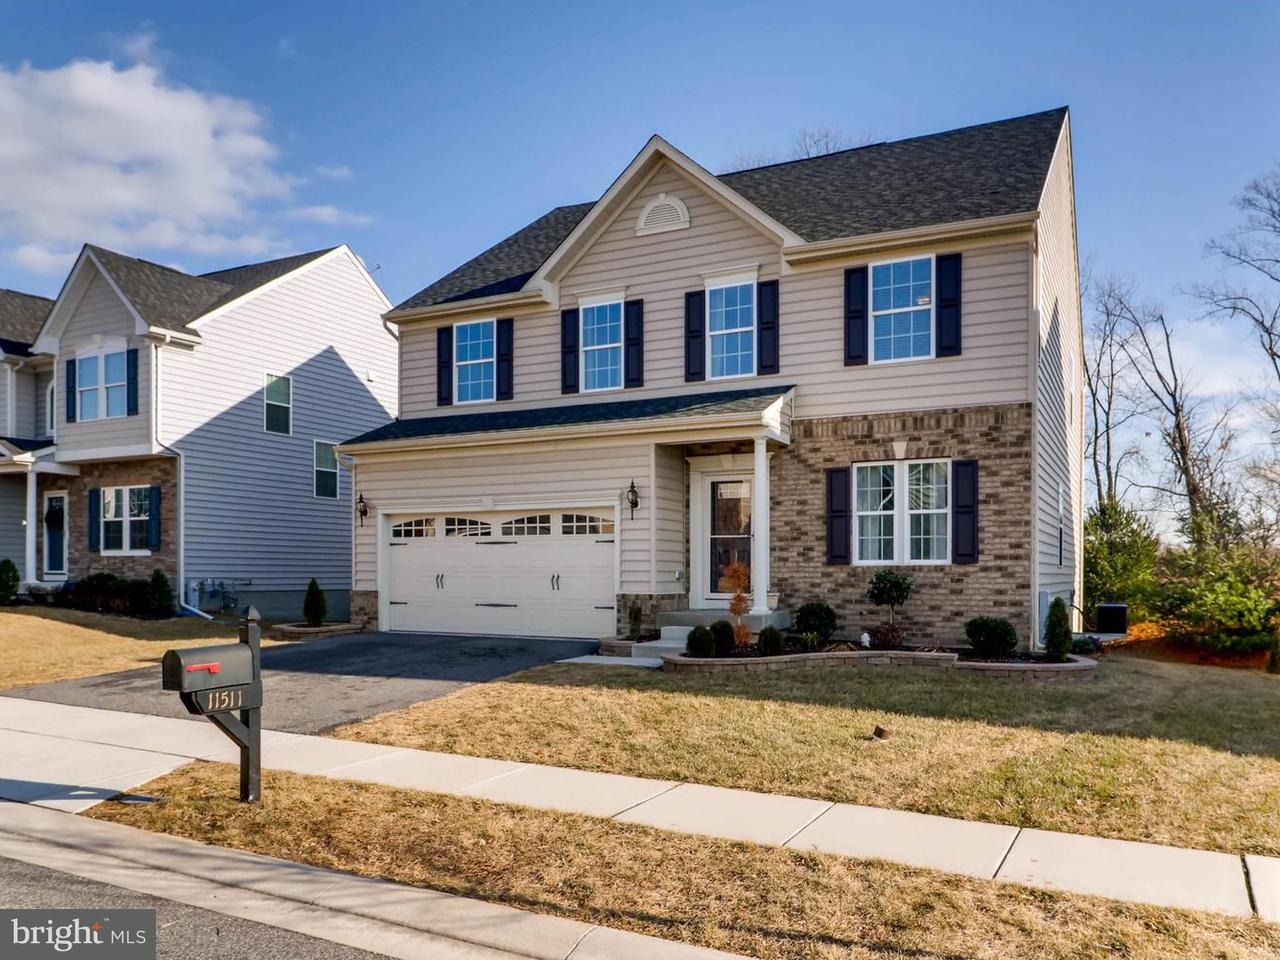 Single Family Home for Sale at 11511 Ridgedale Drive 11511 Ridgedale Drive White Marsh, Maryland 21162 United States